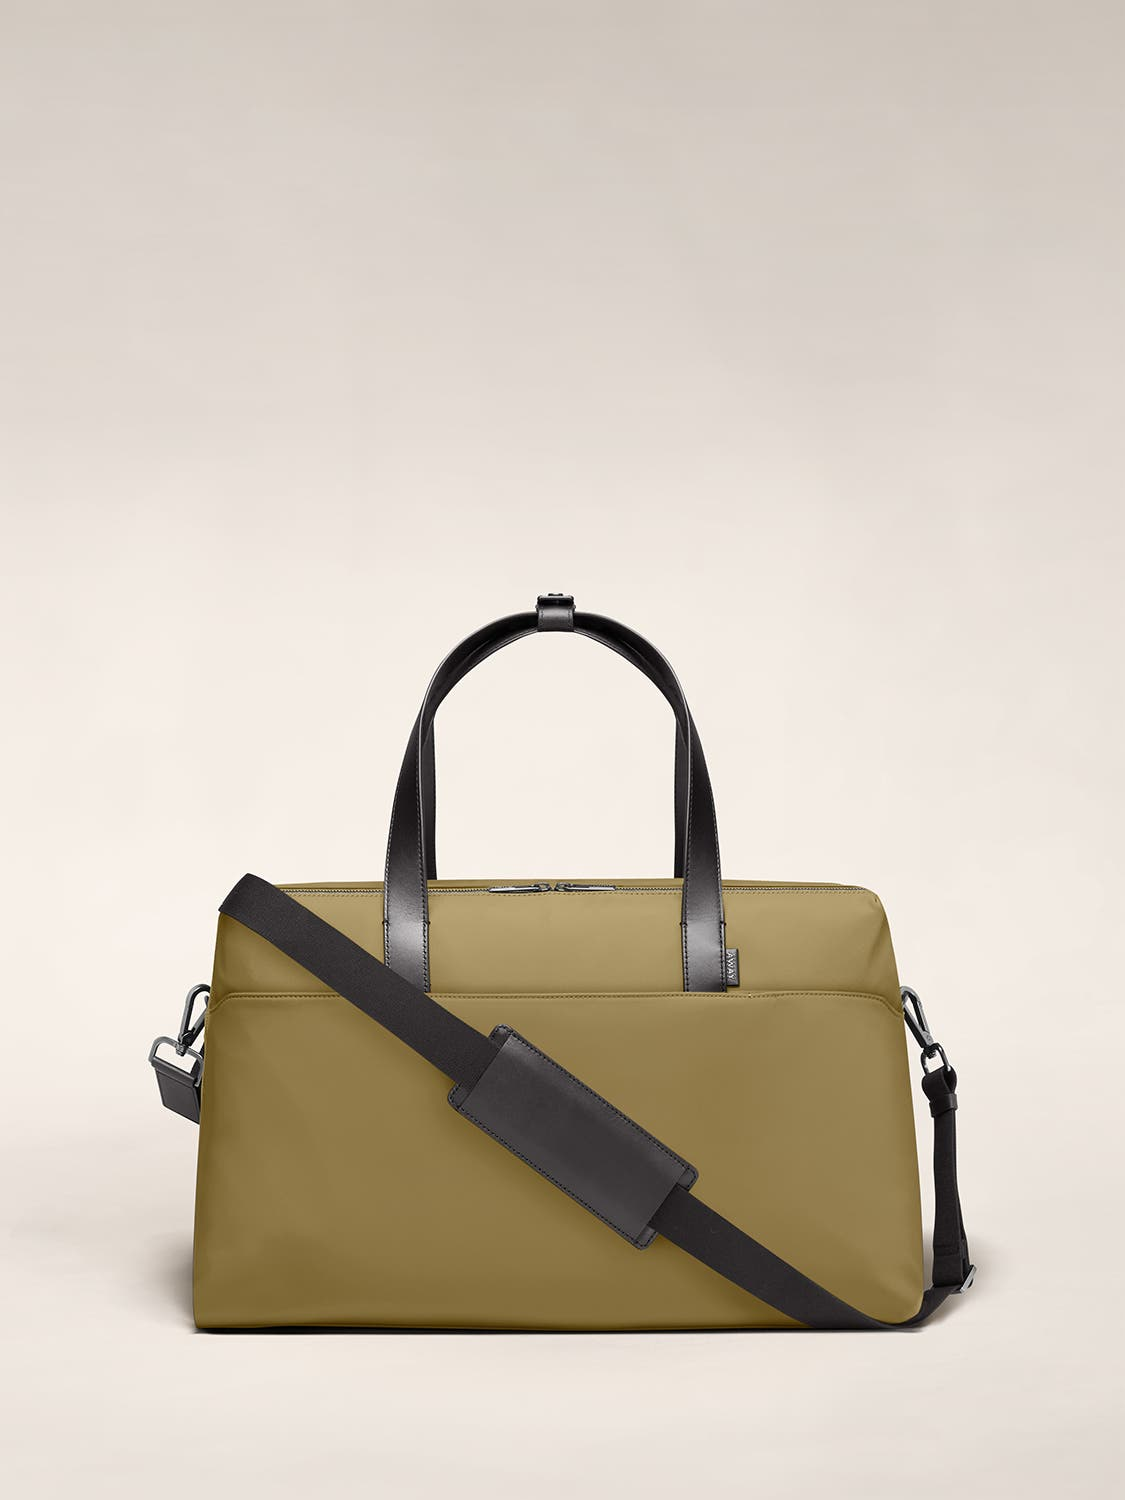 Large duffle bag in olive with raised handles and shoulder strap across the bag.